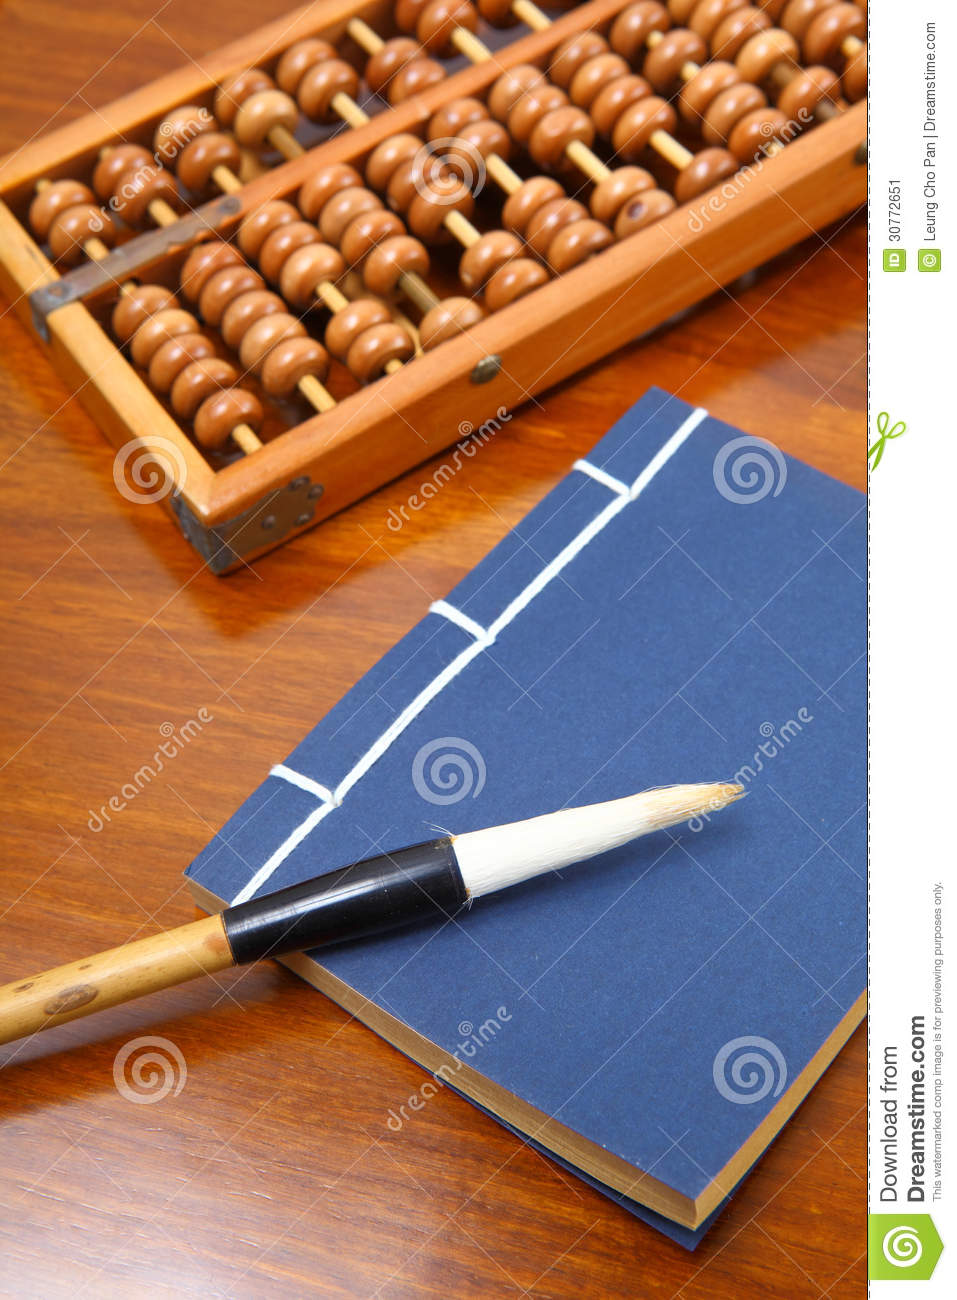 the chinese abacus short essay essay In the essay, differentiates between chinese and western culture essays related to chinese culture 1 chinese cultures the country being studied now is china.